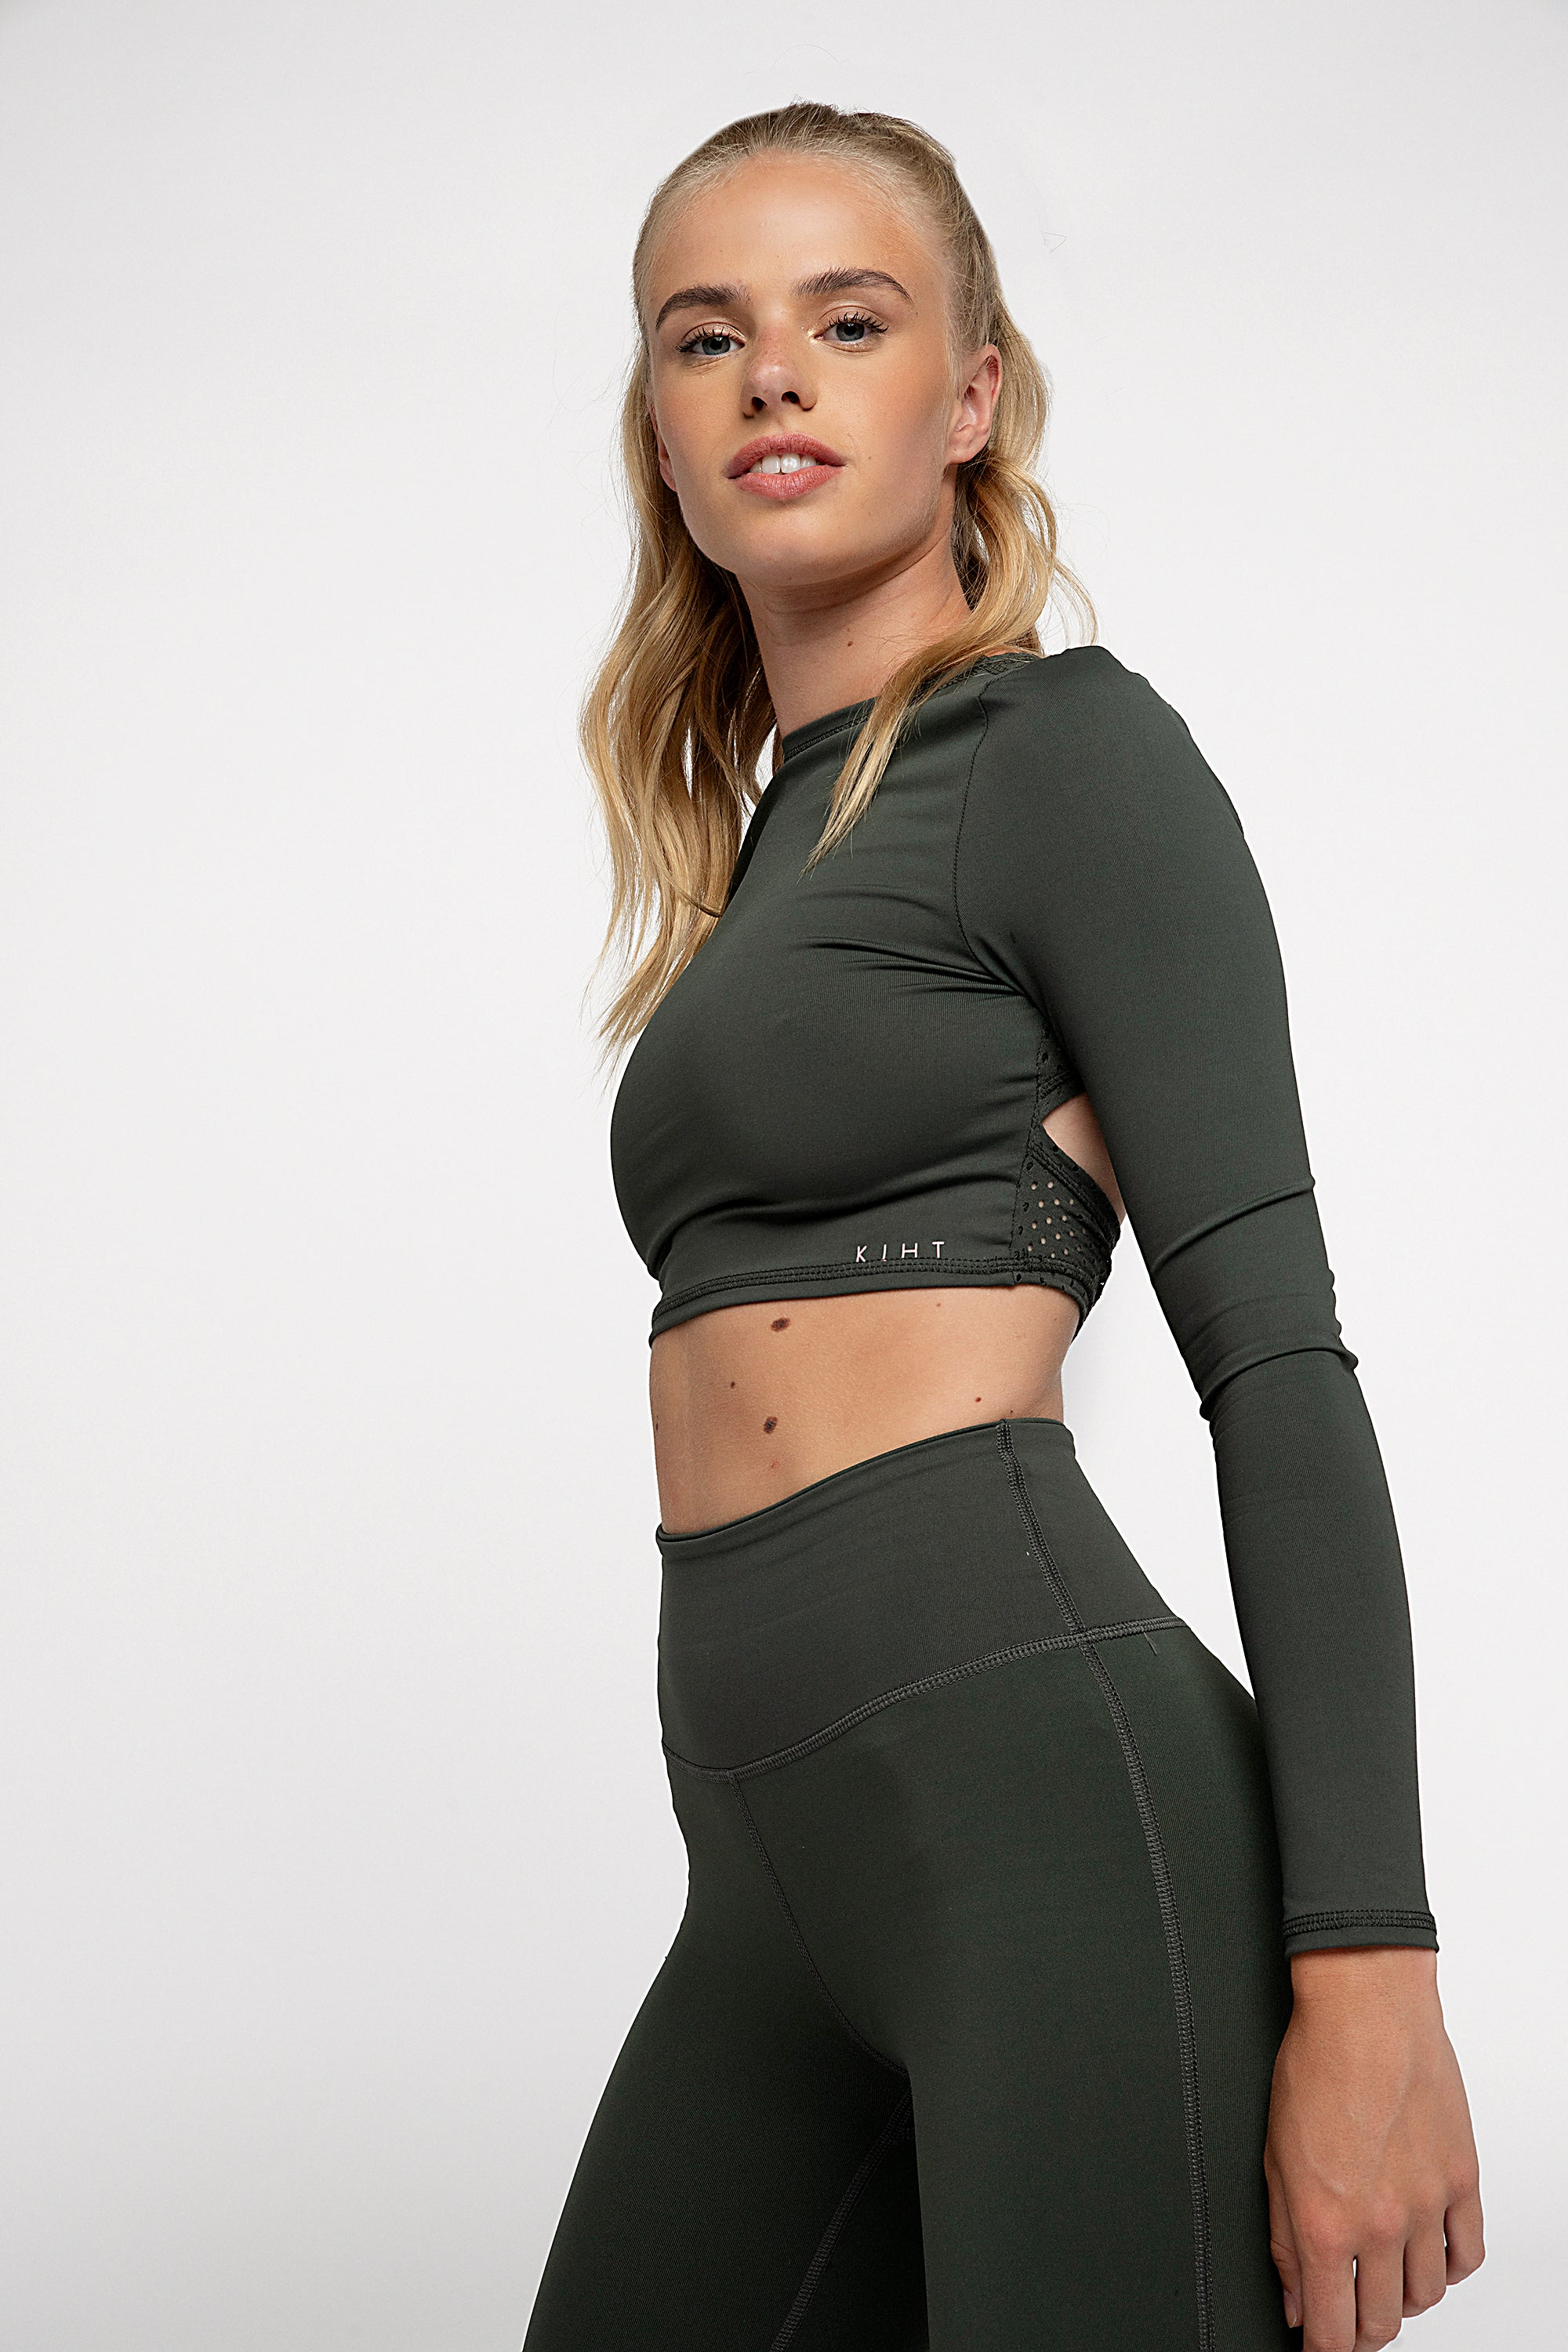 UK ethical activewear Long sleeve gym crop top in green jungle khaki colour with punched panel back detailing